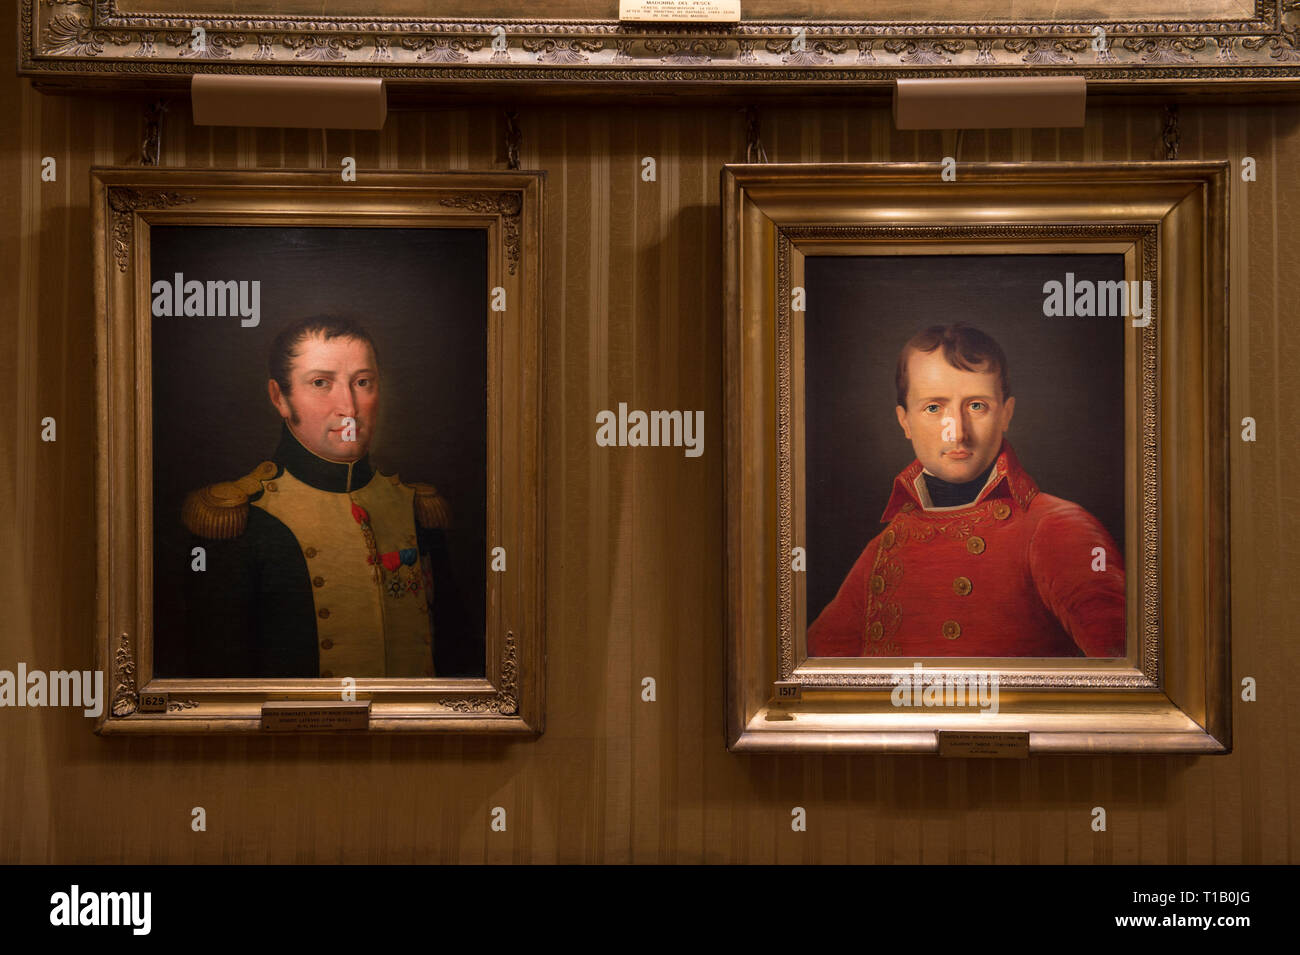 Apsley House, London, UK. 25 March, 2019. 'Young Wellington in India' exhibition explores the early years and provide insights into the man known globally as the 1st Duke of Wellington, who later defeated Napoleon Bonaparte at Waterloo in 1815. The exhibition runs from 30 March - 3 November 2019. Image: Portraits of Wellington's adversary Napoleon Bonaparte and family decorate the walls. Credit: Malcolm Park/Alamy Live News. - Stock Image